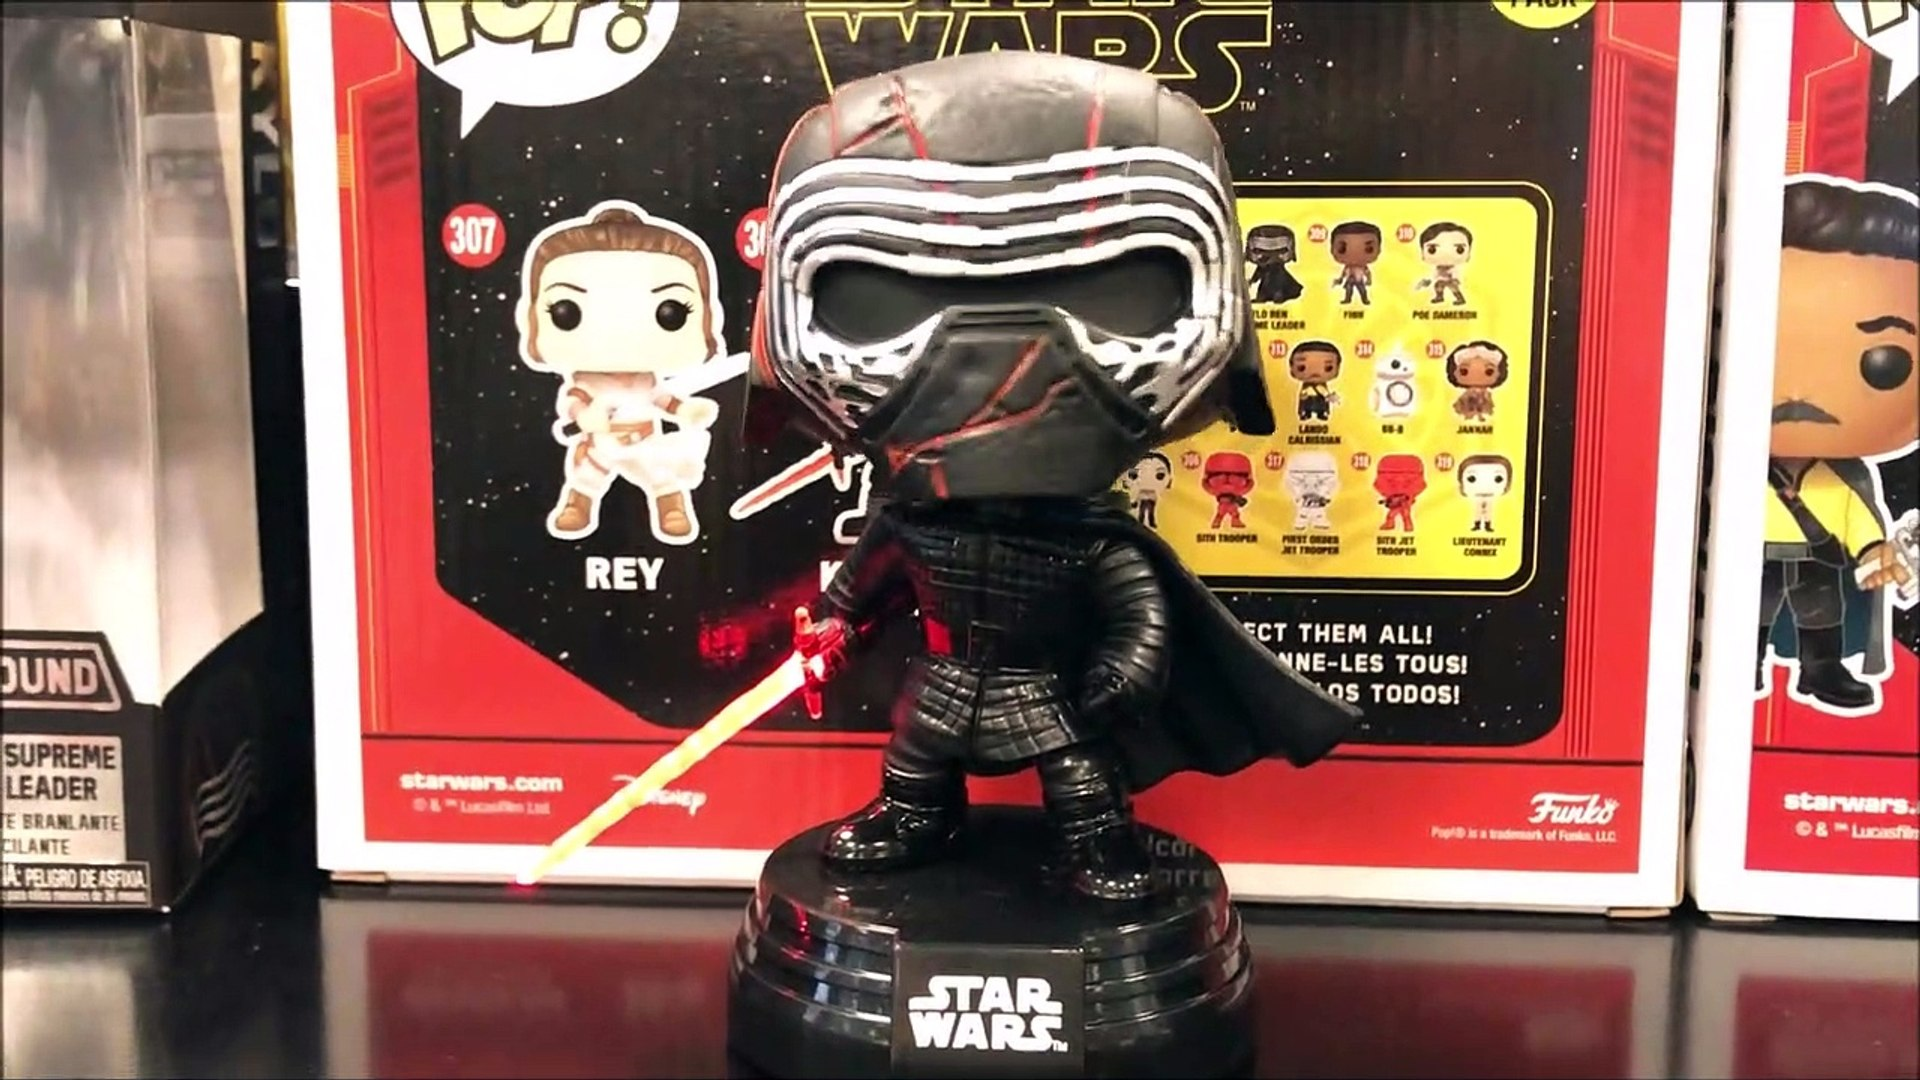 Star Wars Kylo Ren Supreme Leader Light And Sound Funko Pop Review Video Dailymotion